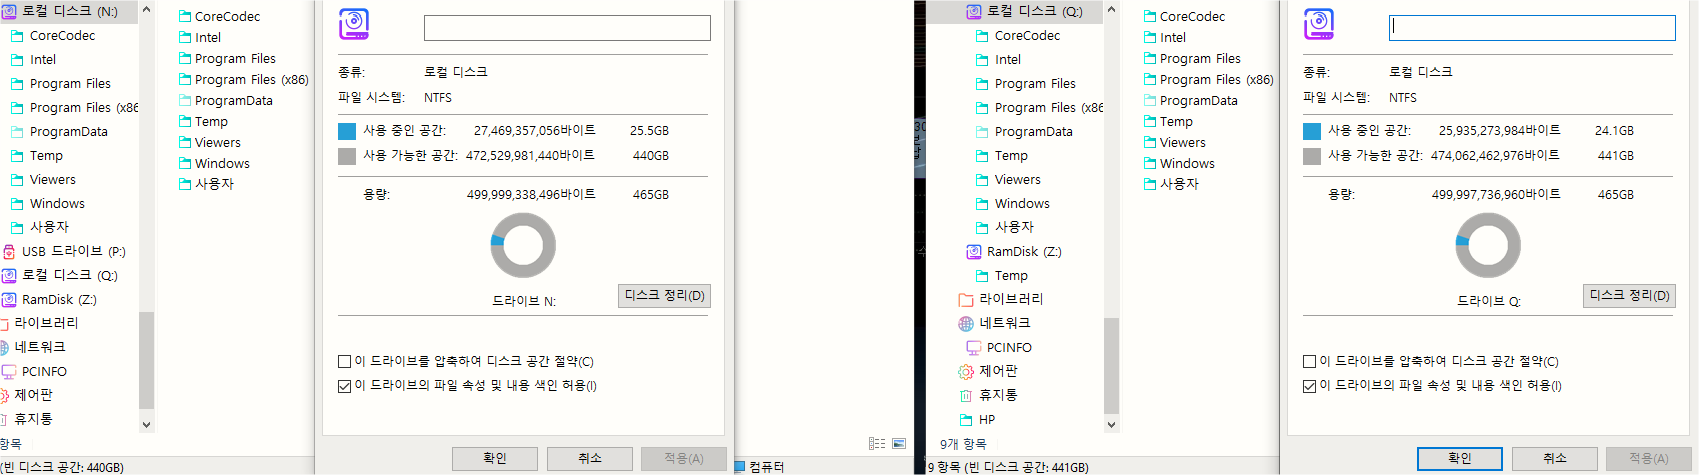 03-WinToHDD_시스템(HDD)복제_UEFi.png